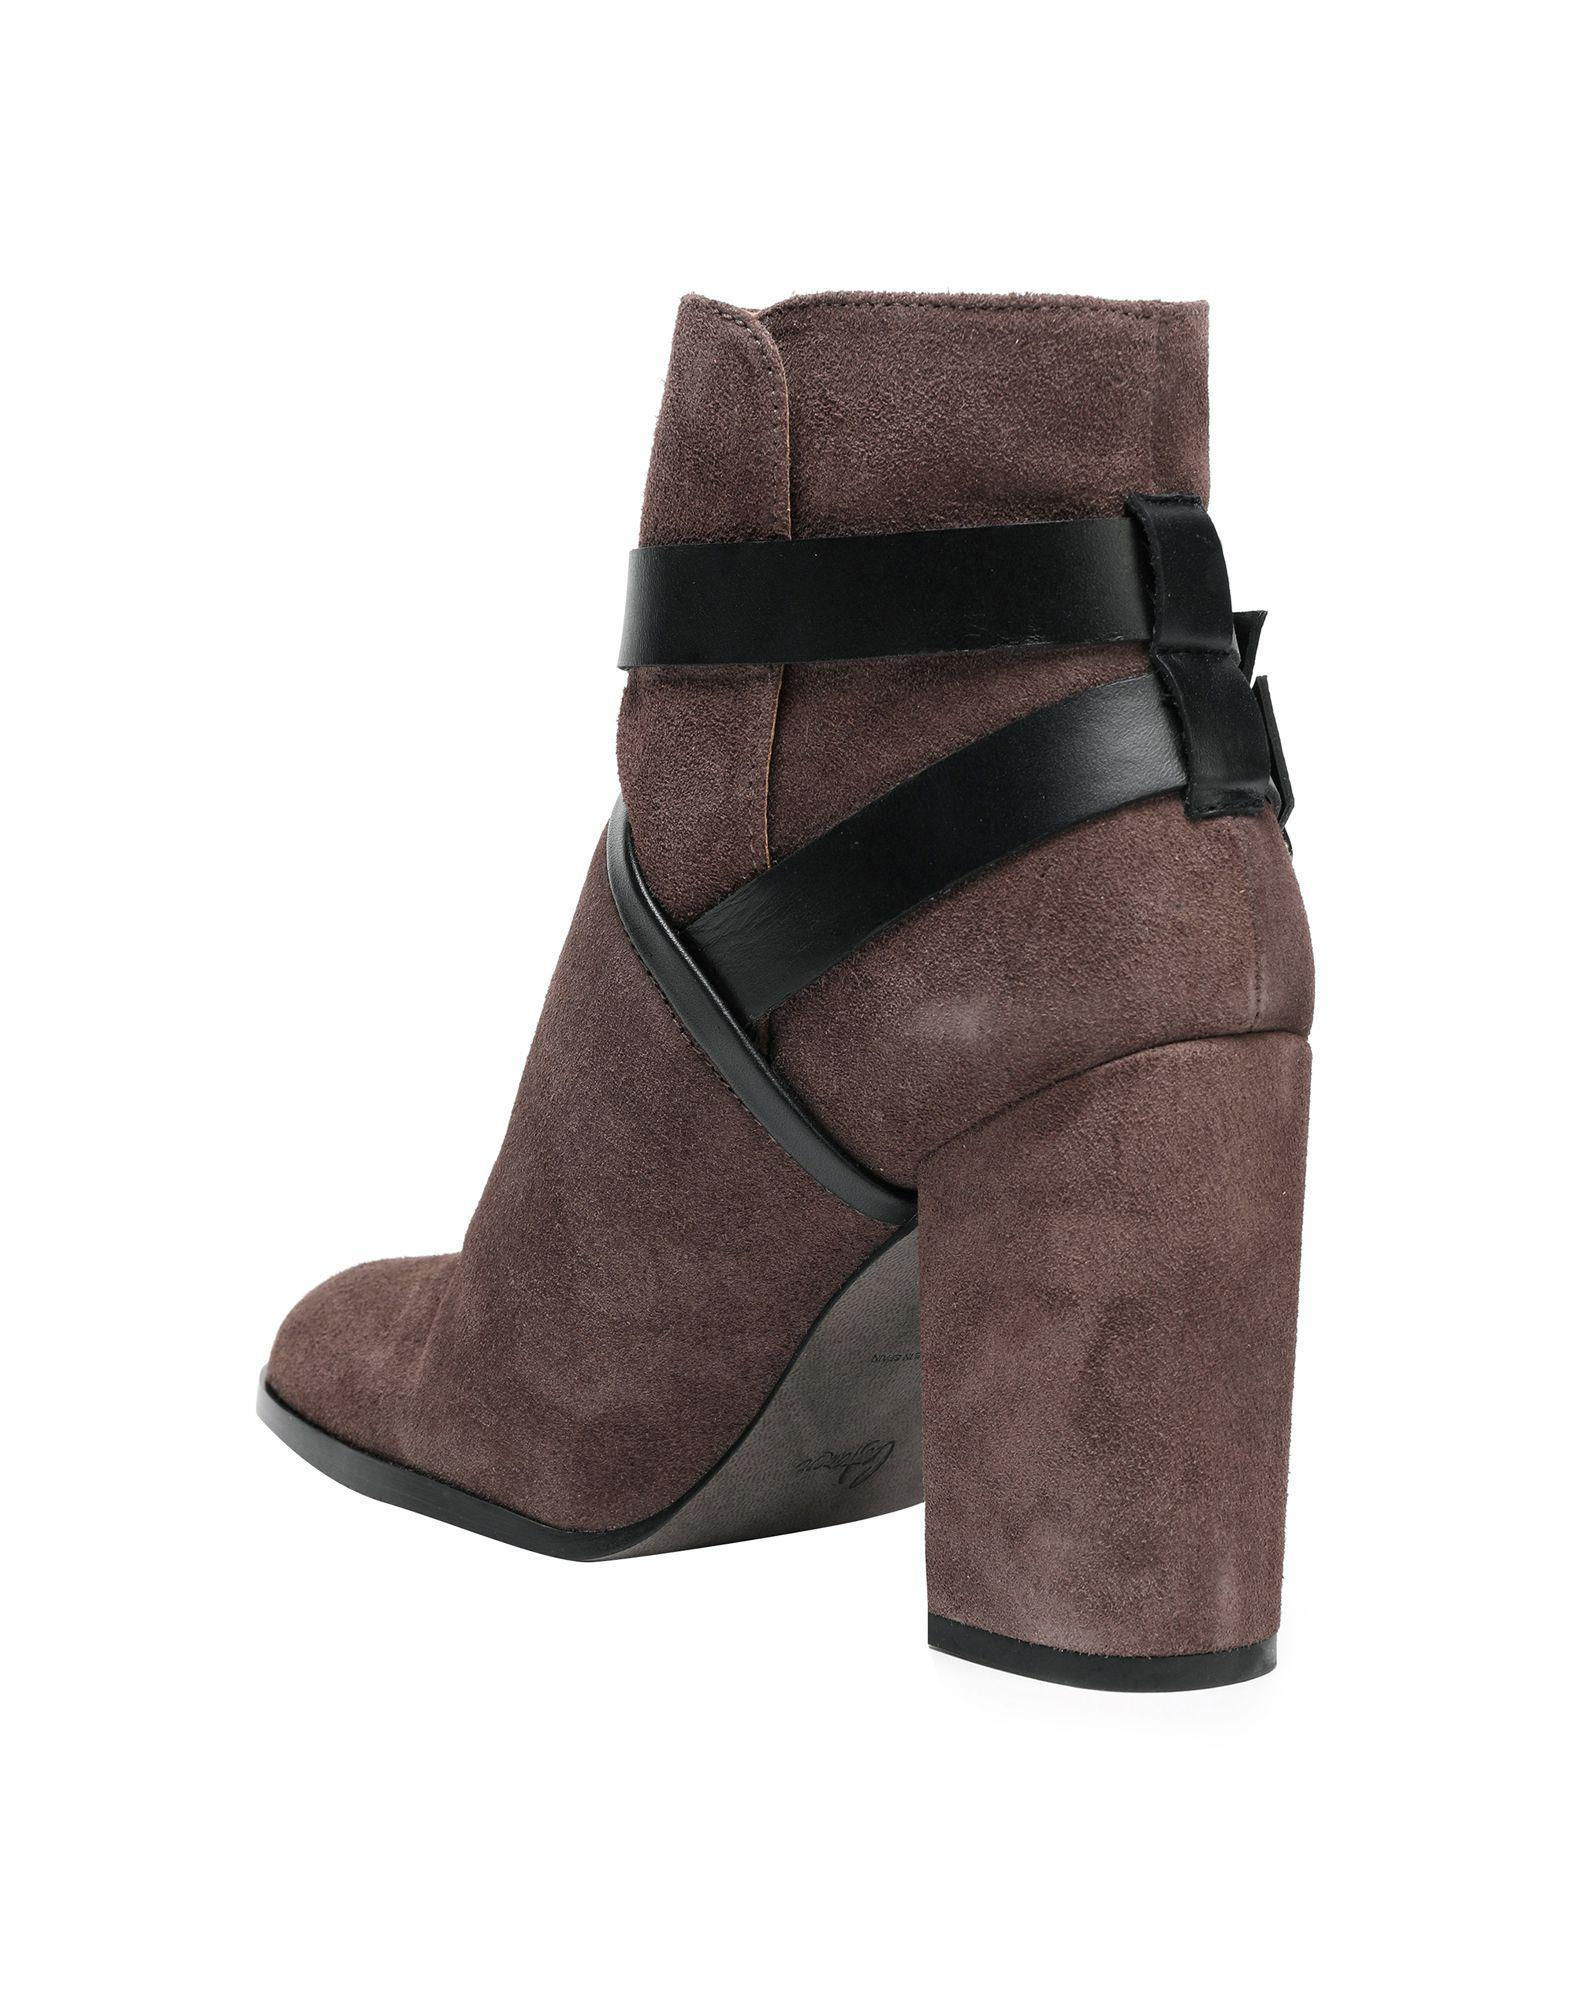 Castaner Suede Ankle Boots in Khaki (Brown)